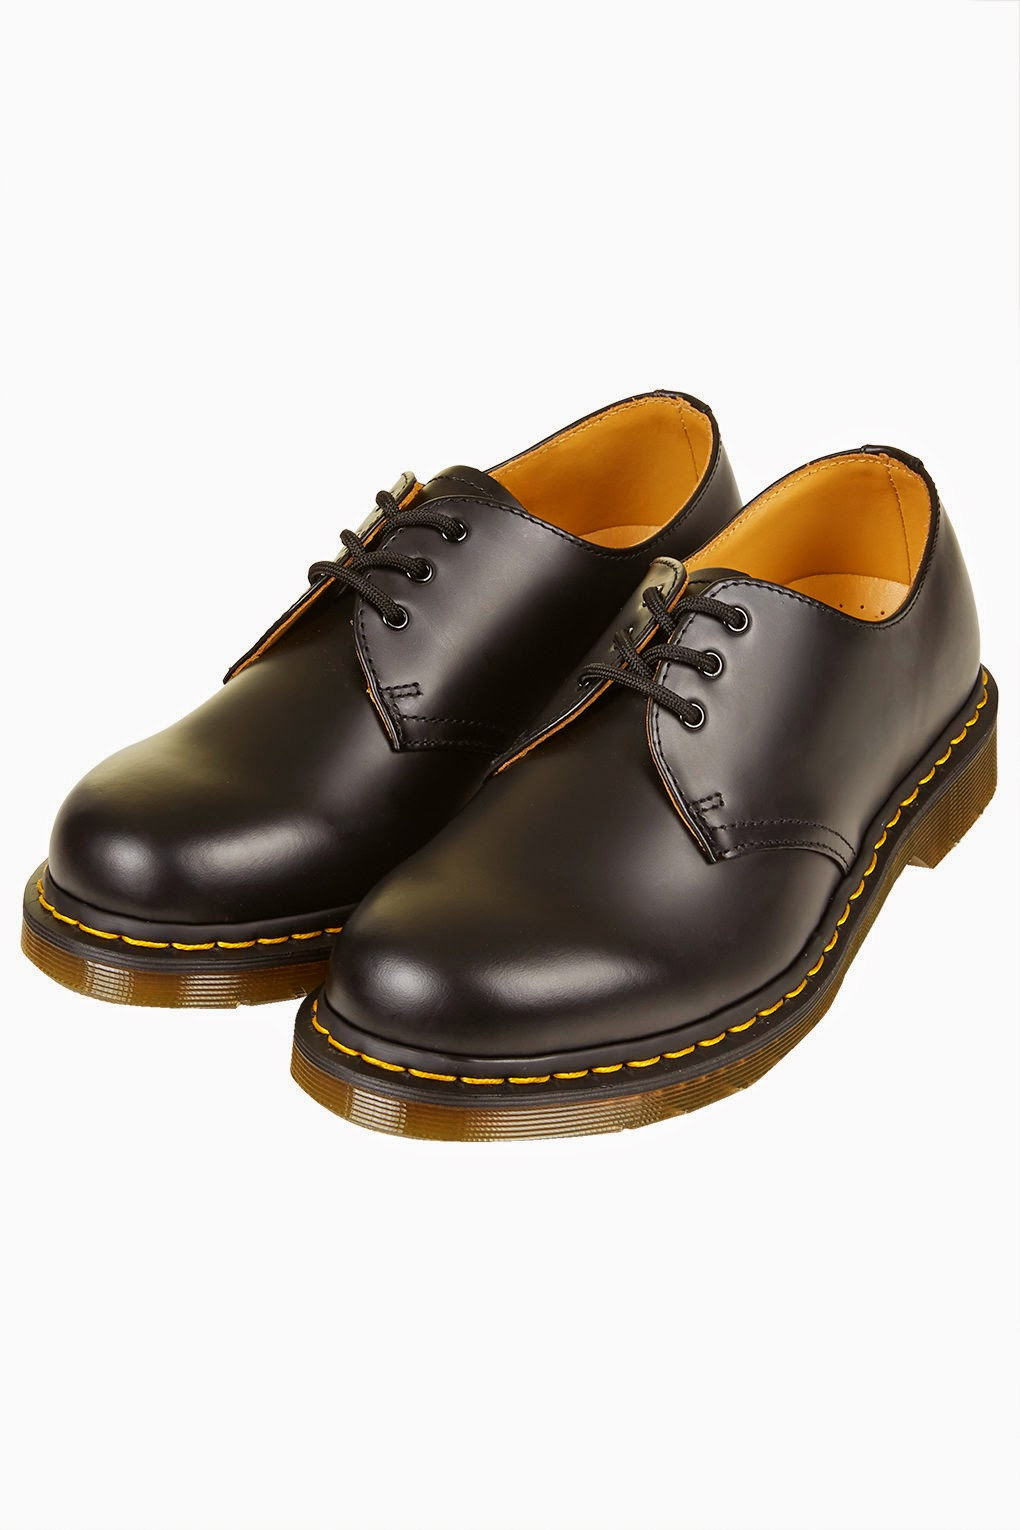 dr martens shoes, docmartens shoes, topshop dr martens shoes,